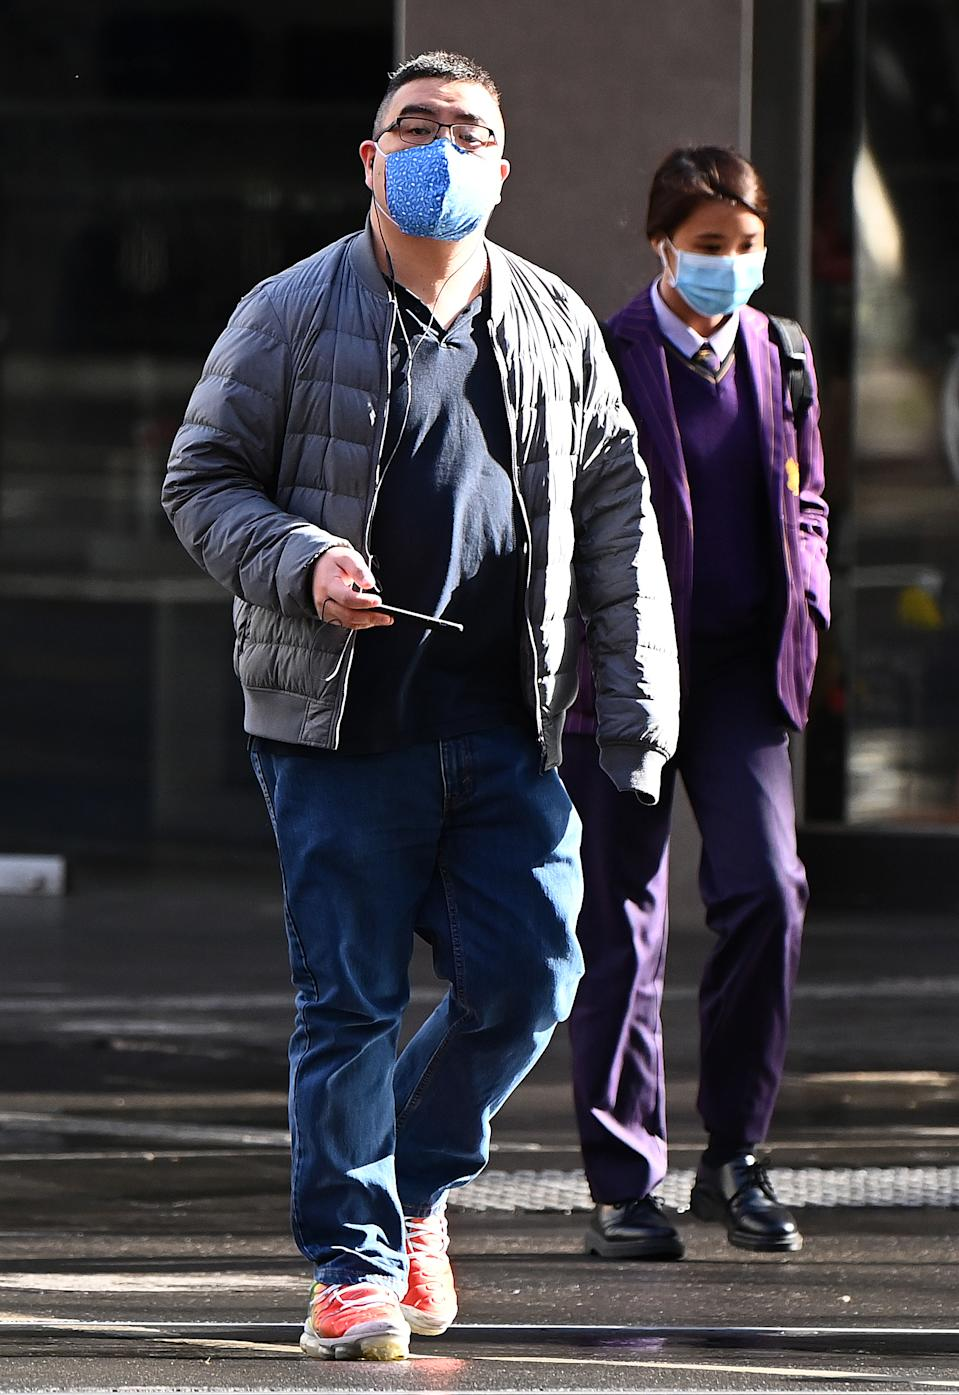 Photo shows people in Melbourne wearing face masks.